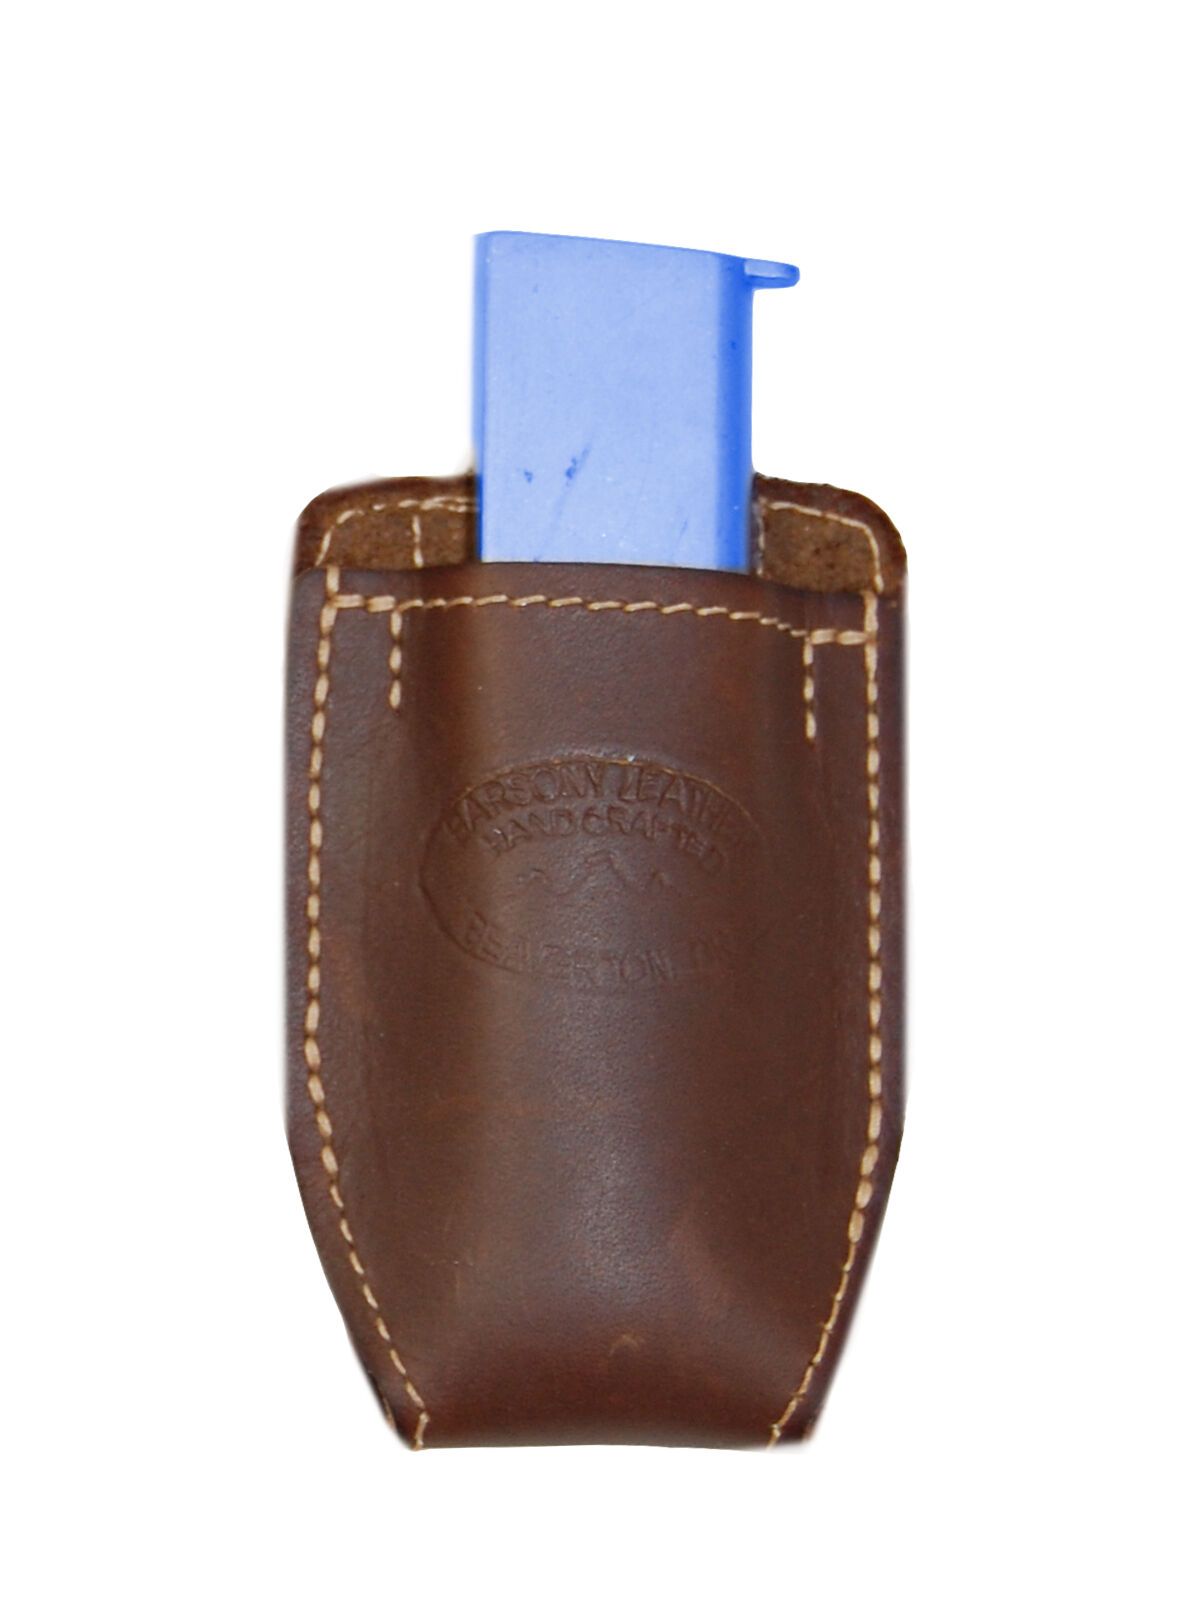 New Barsony Braun Leder IWB Holster + Mag Pouch Walther Walther Pouch SIG-Sauer Mini 22 380 da862a